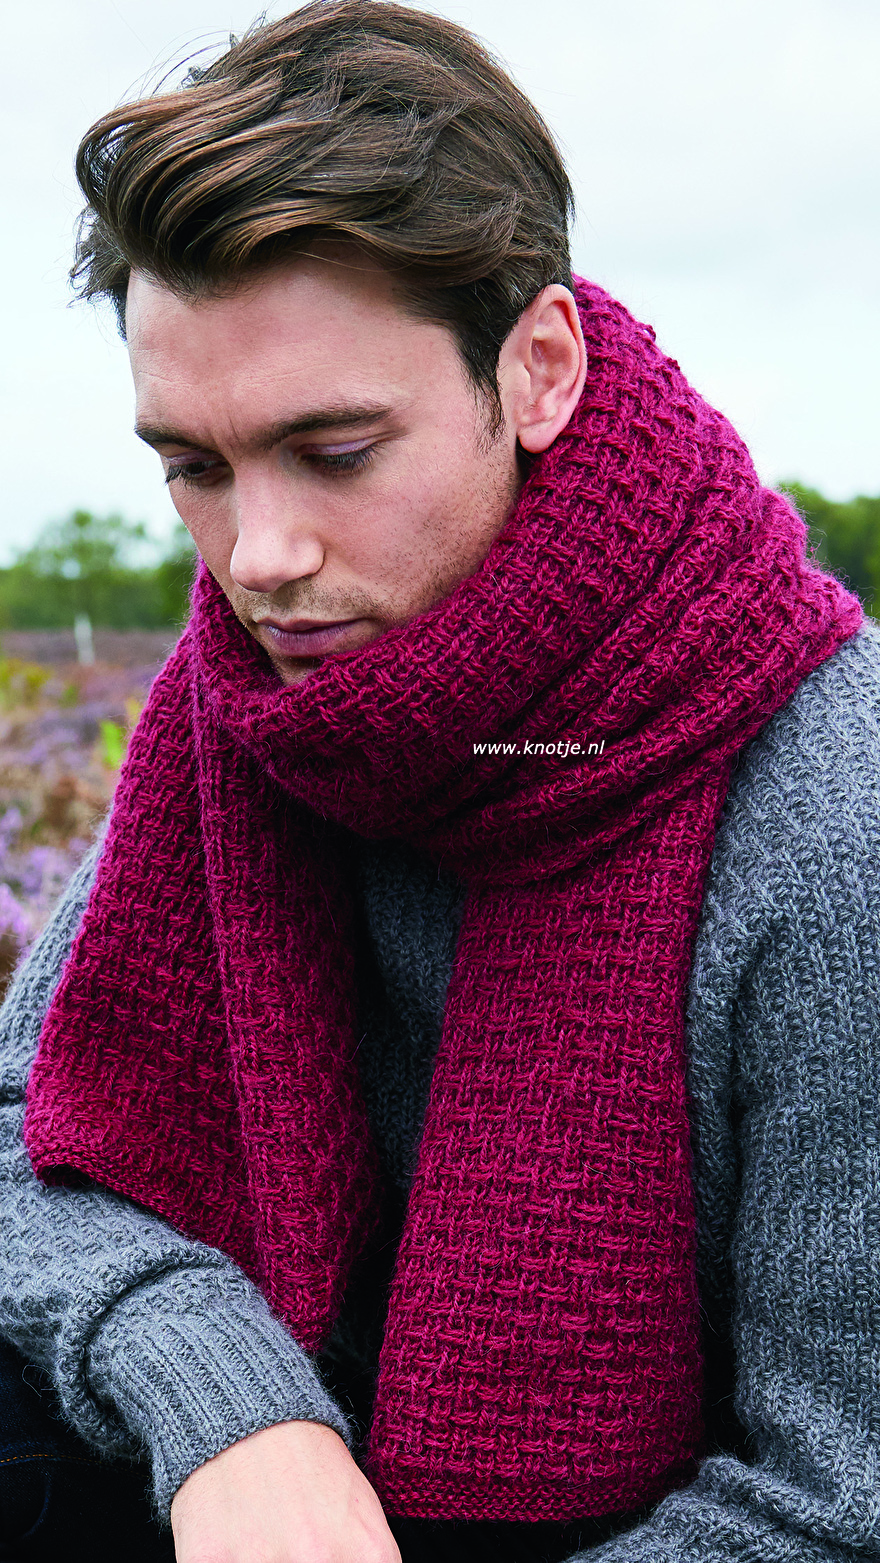 Buckler Sweater_Fingle Scarf 3kopie.jpg